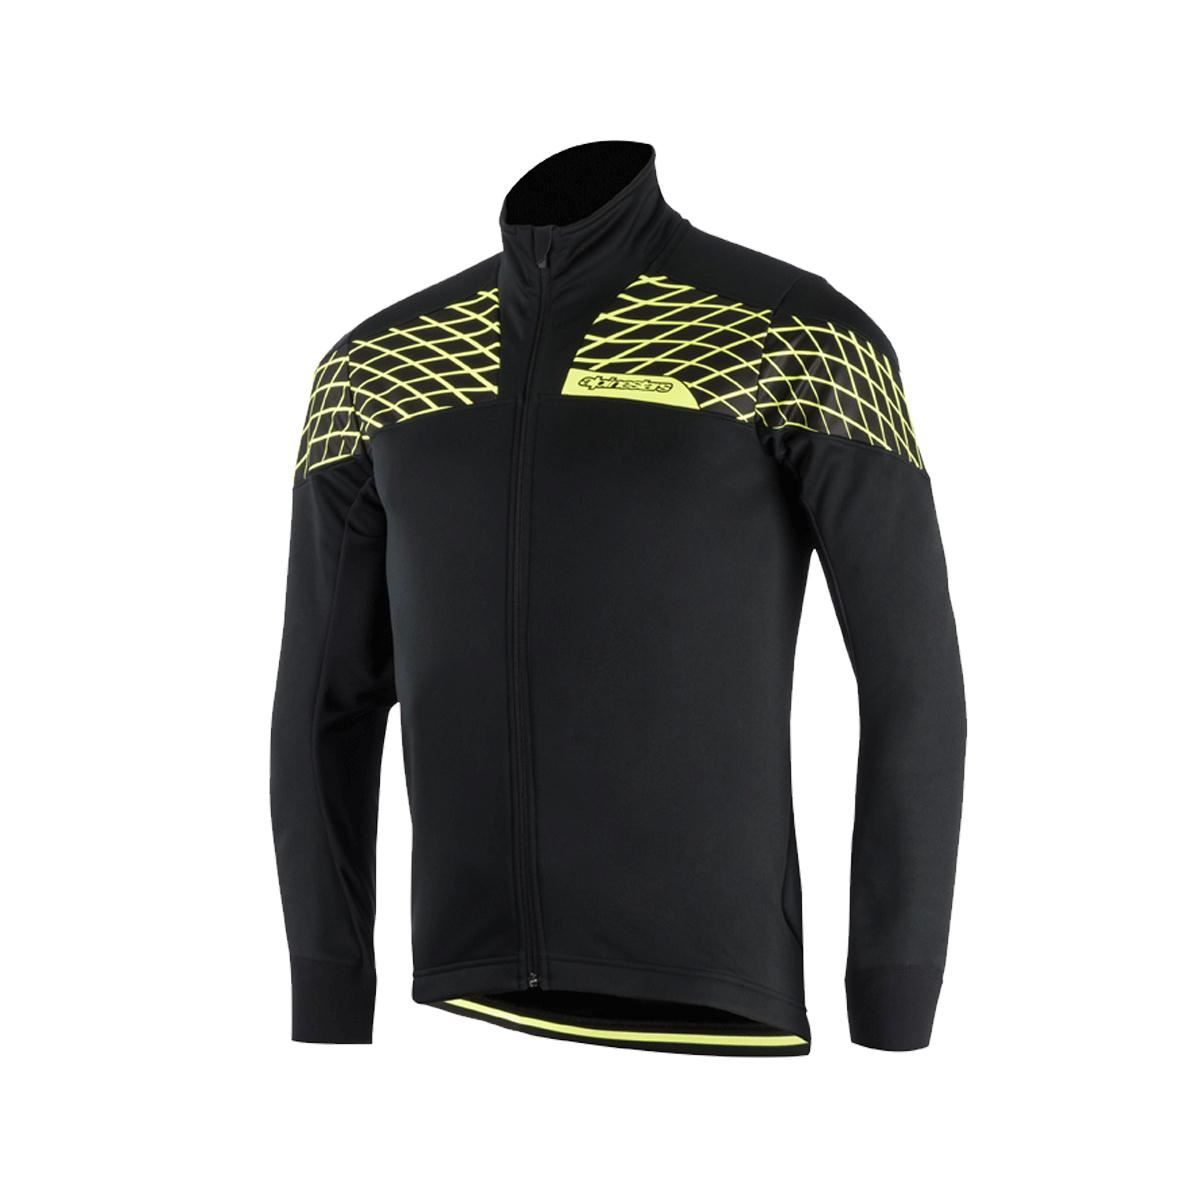 Alpinestars Brakeless Pro Shell Jacket 2017: Black/Yellow Fluo L